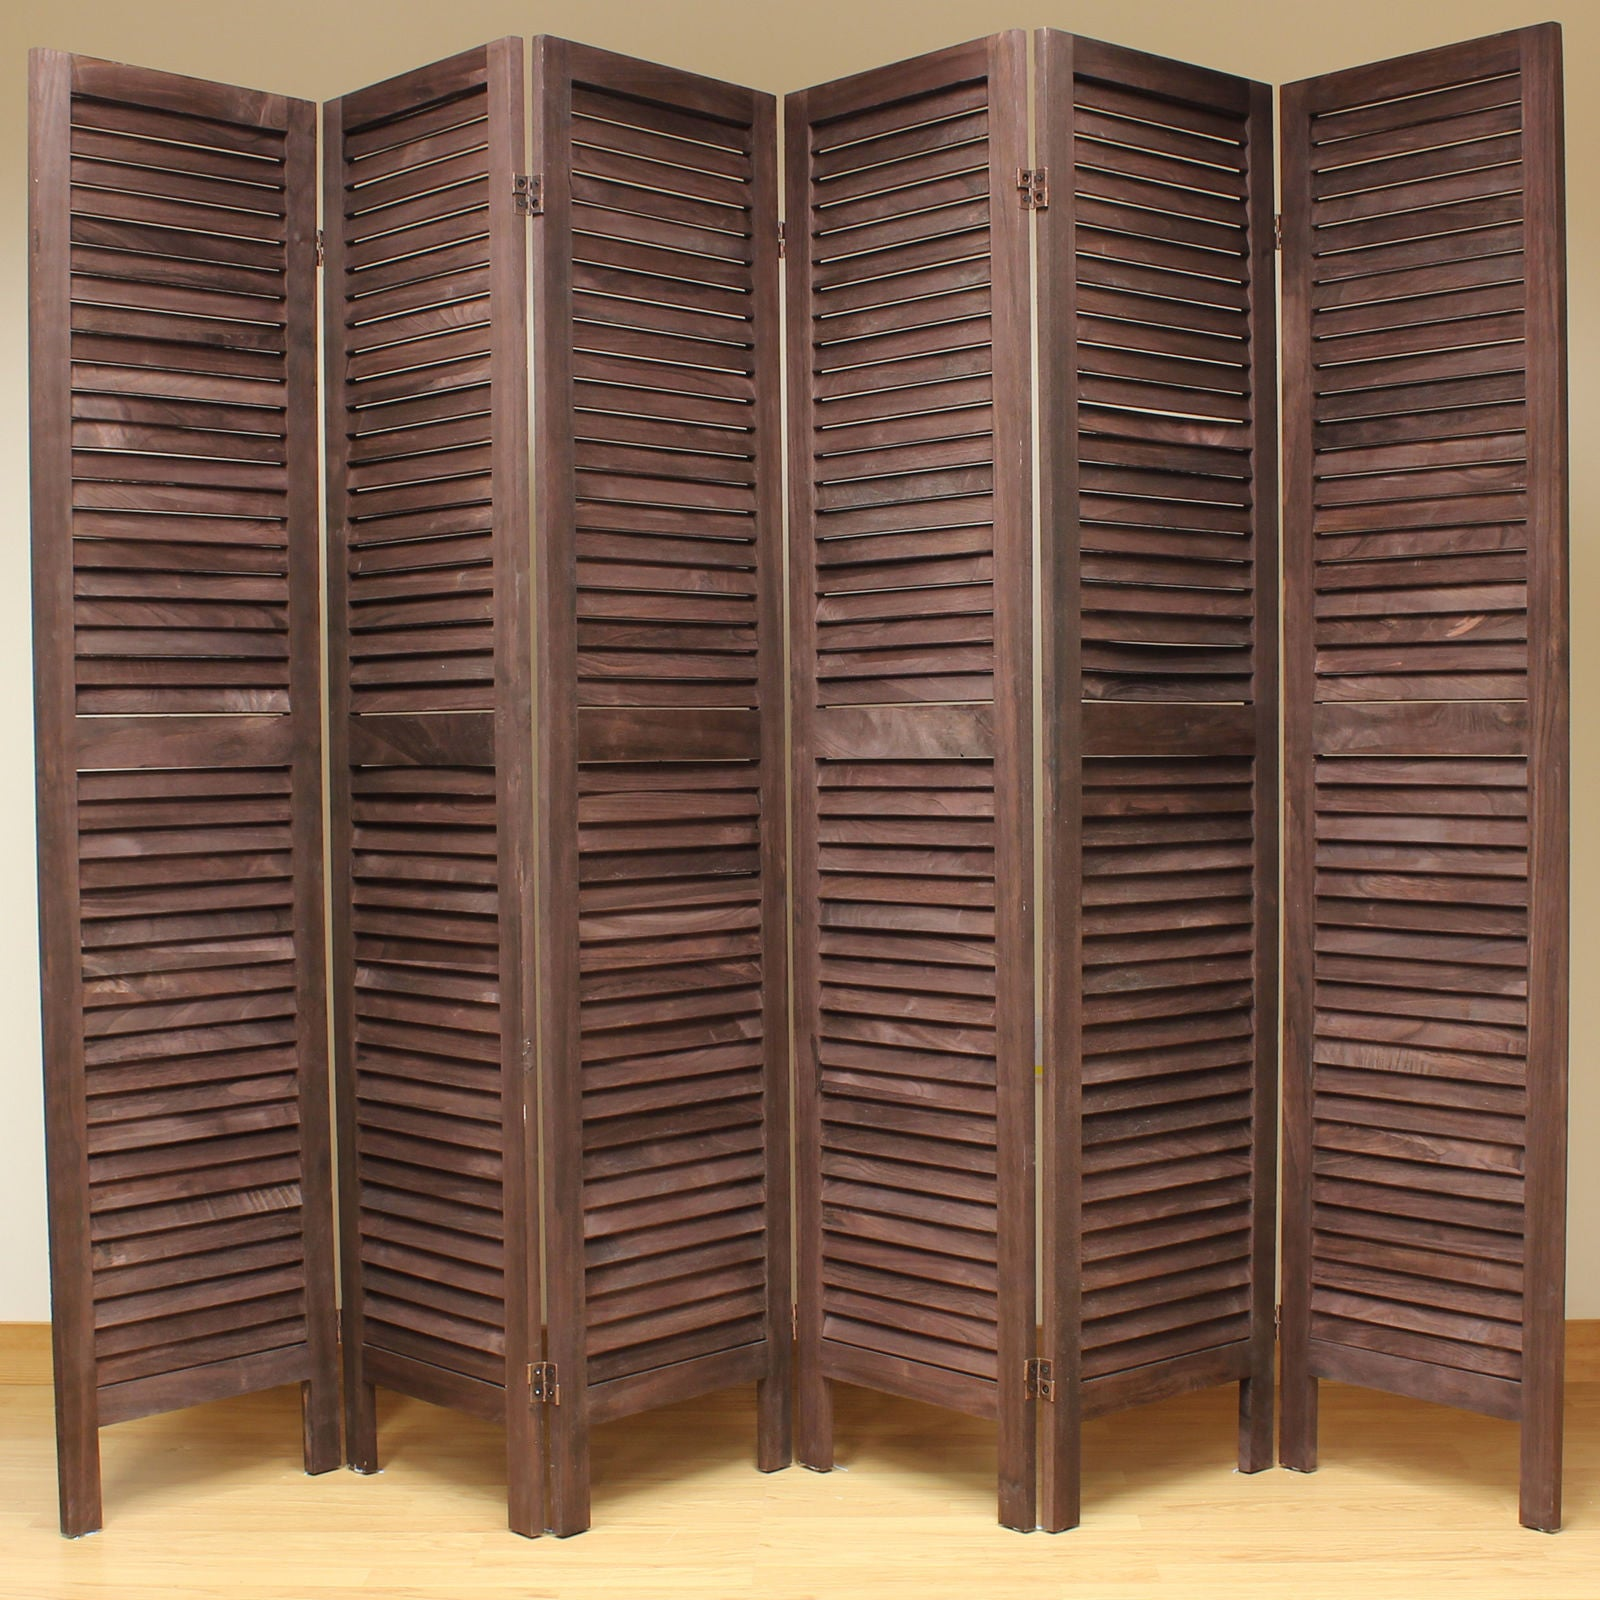 Wooden Slat Room Divider Screen   6 Panel   Brown